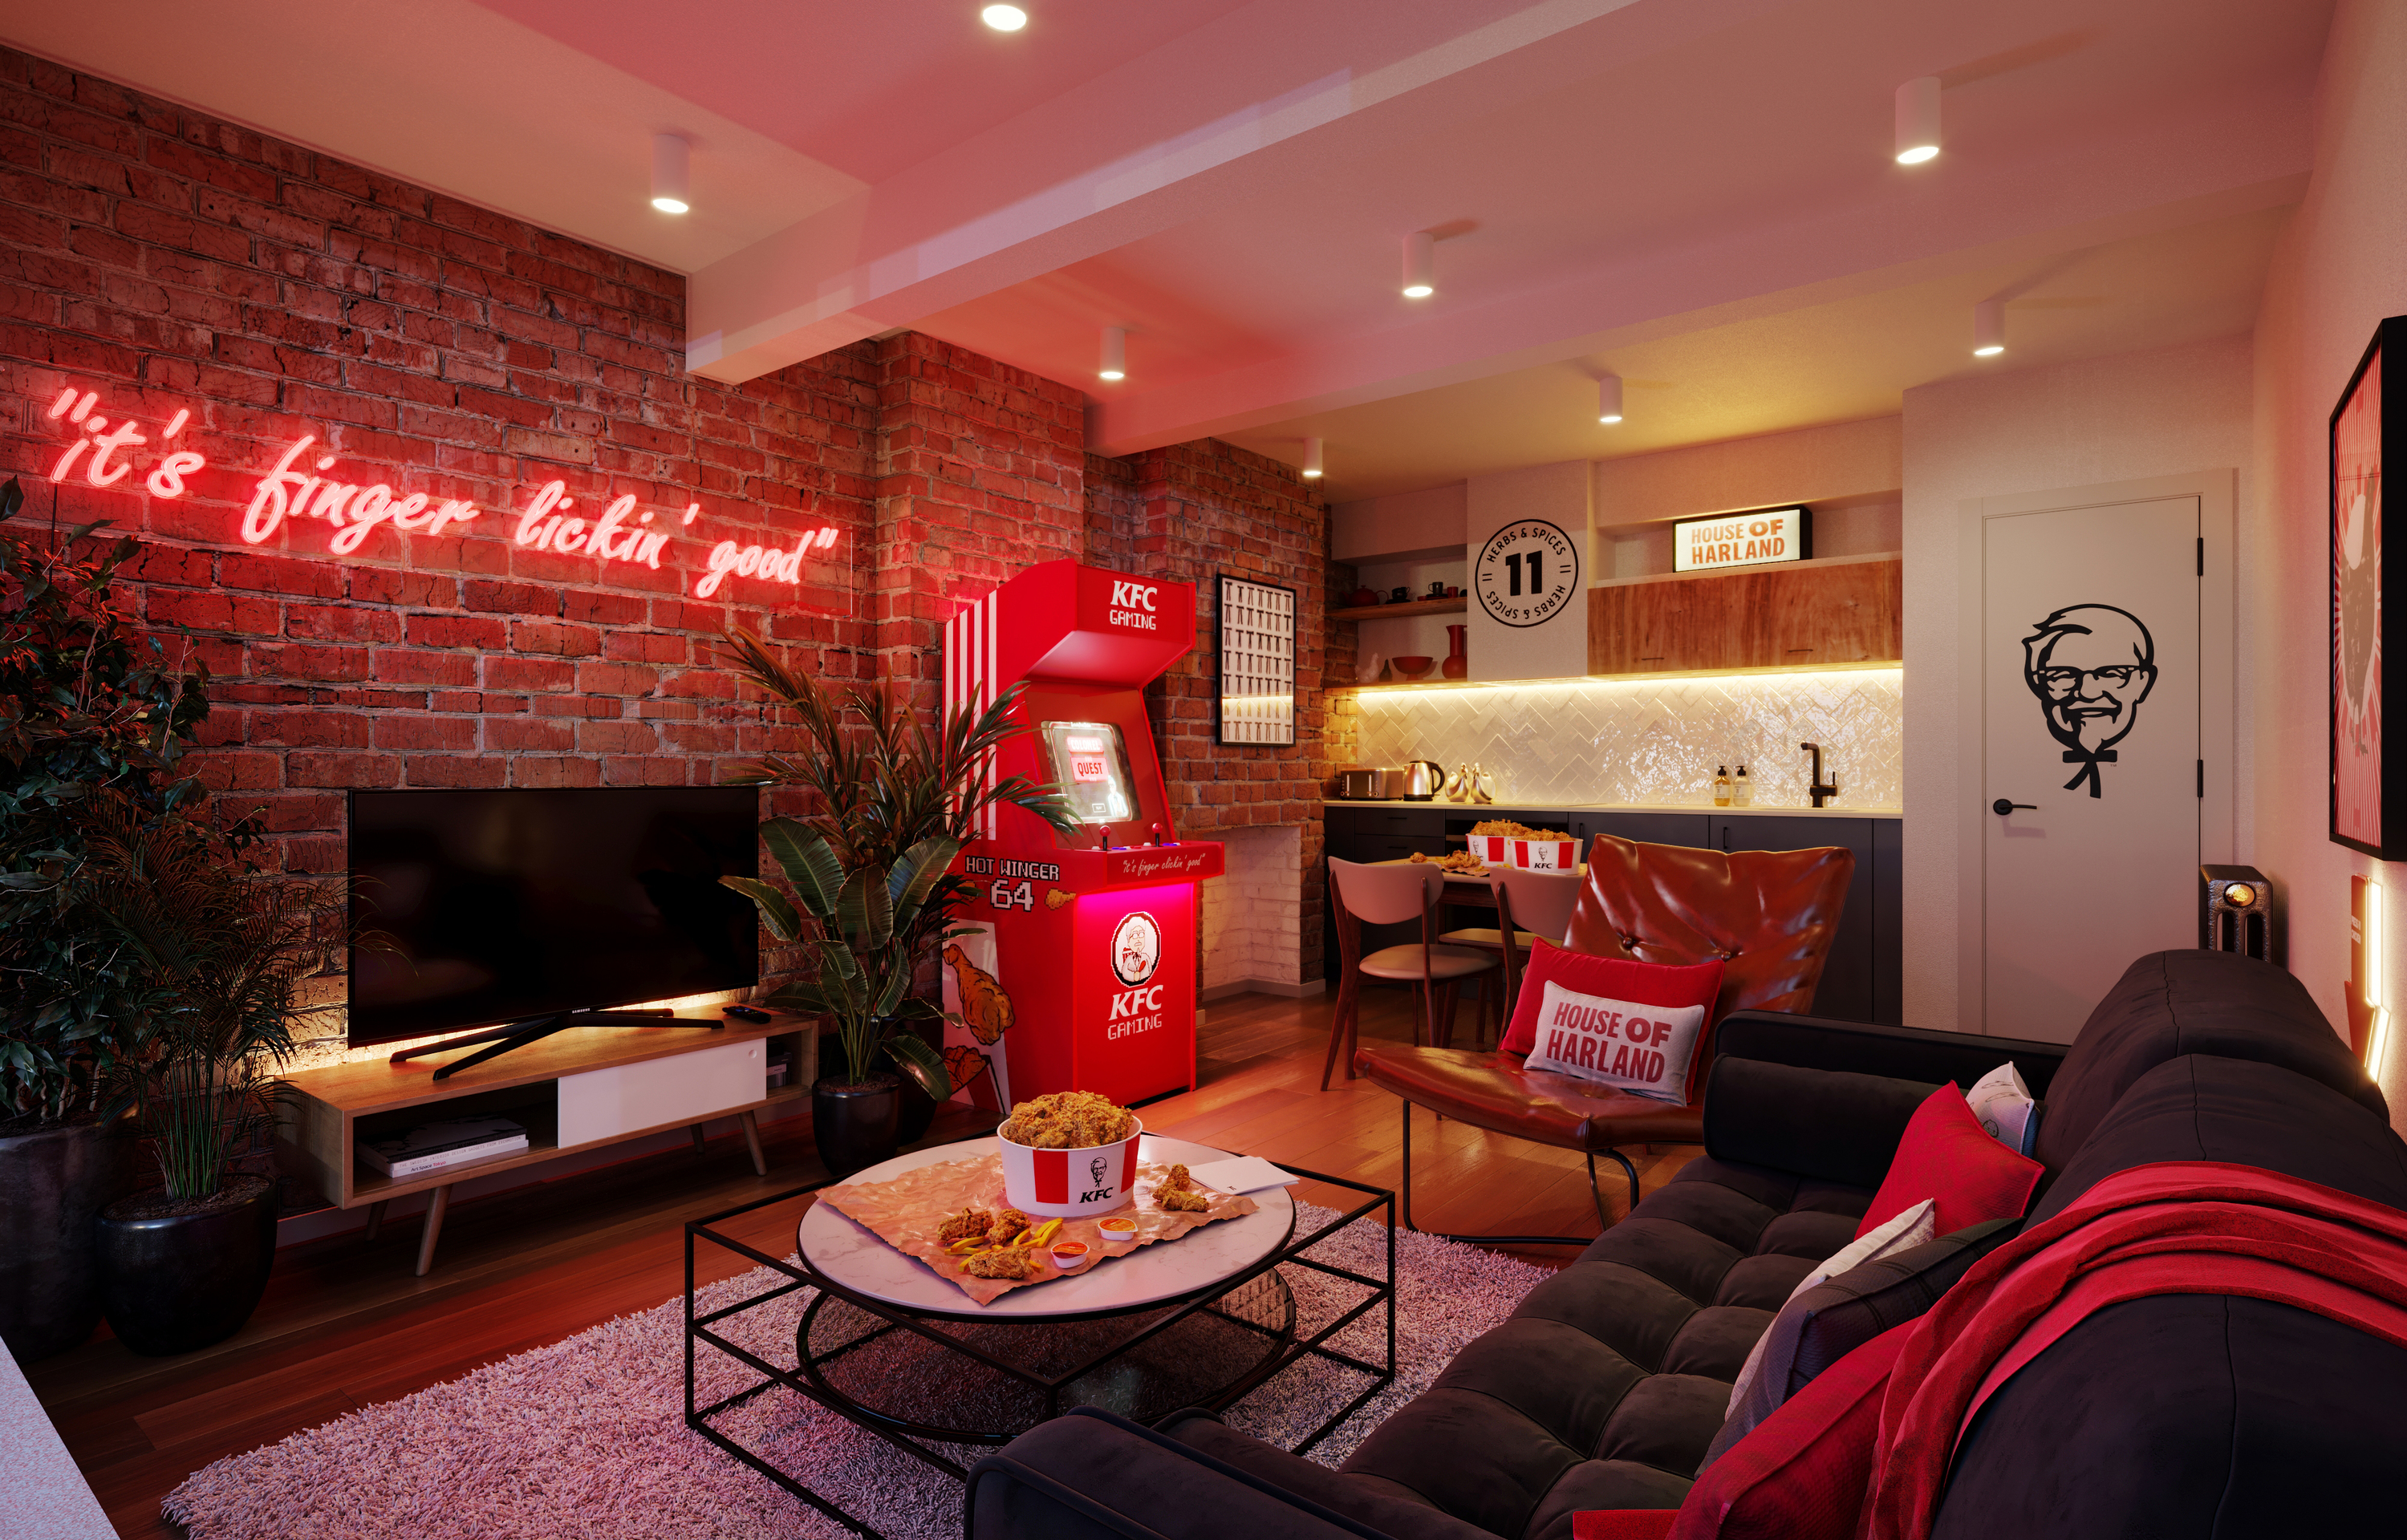 'Chick-in' at this finger lickin' KFC-themed hotel suite